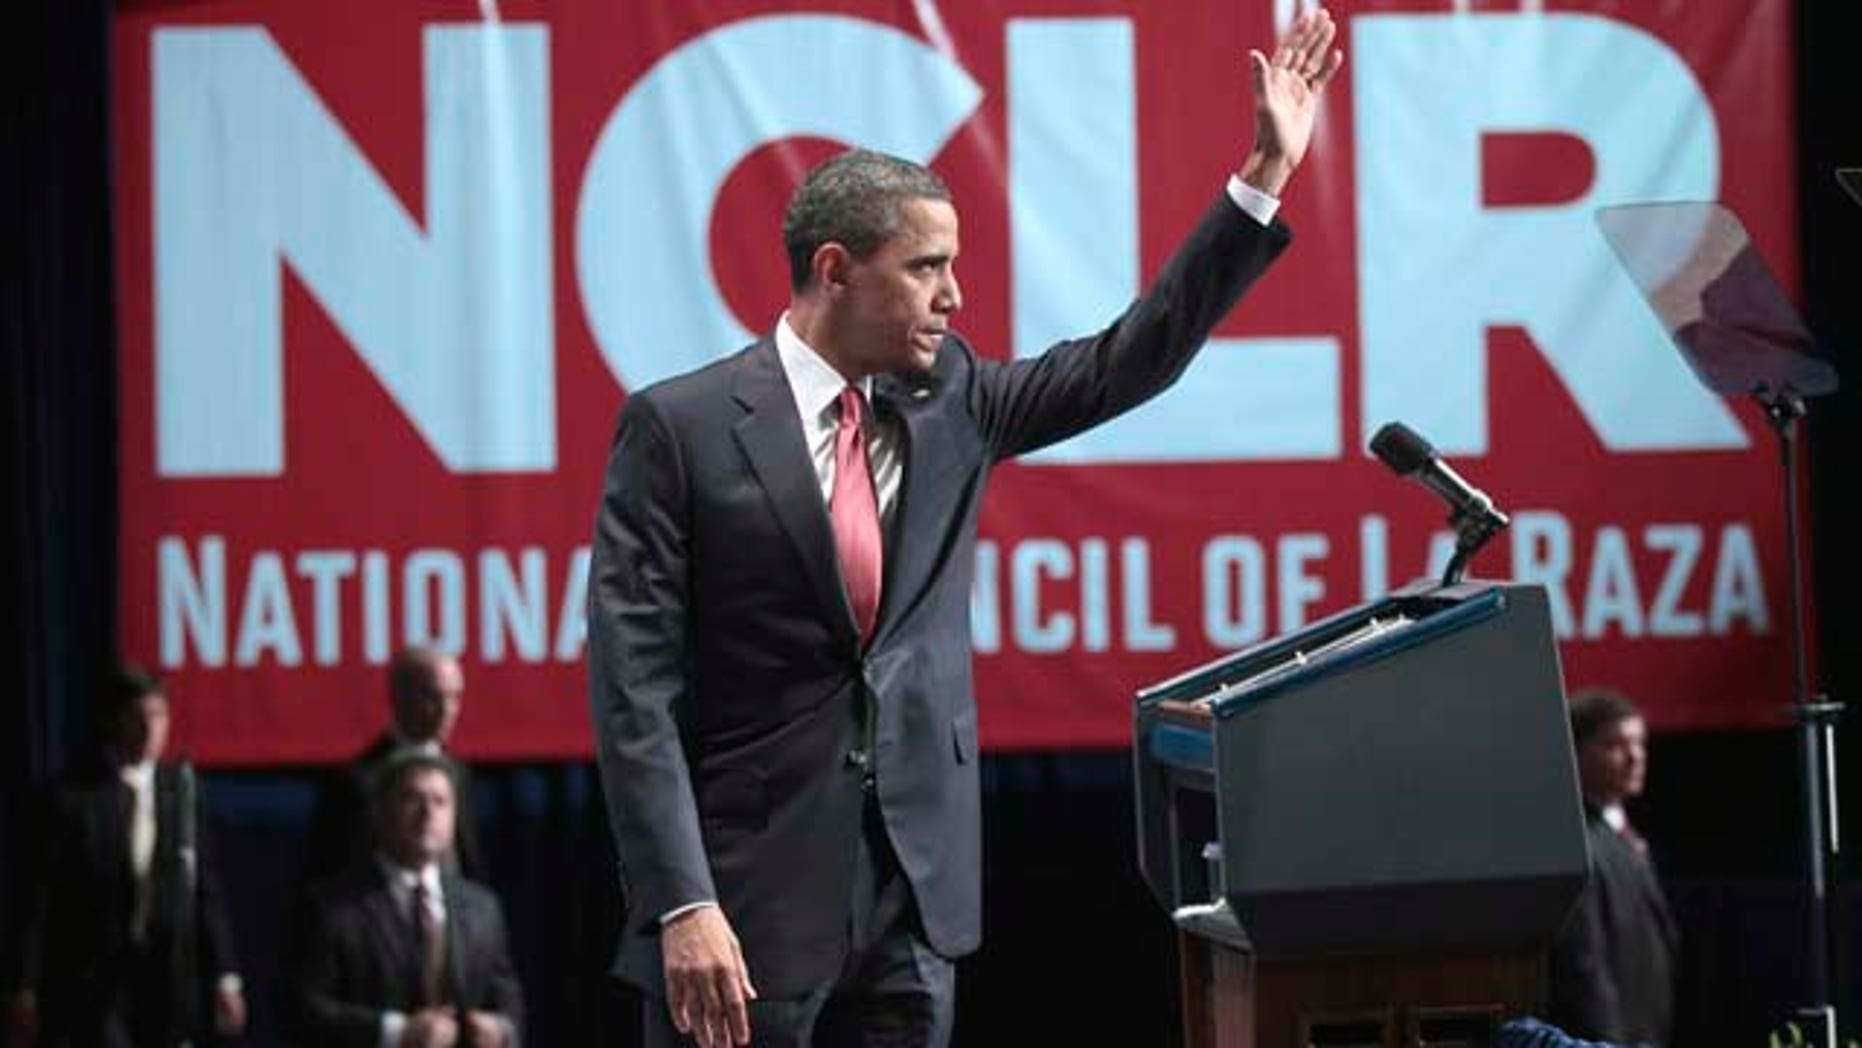 President Barack Obama waves as he prepares to walks off stage after delivering remarks at the National Council of La Raza (NCLR) annual conference luncheon in Washington, Monday, July 25, 2011. (AP Photo/Pablo Martinez Monsivais)